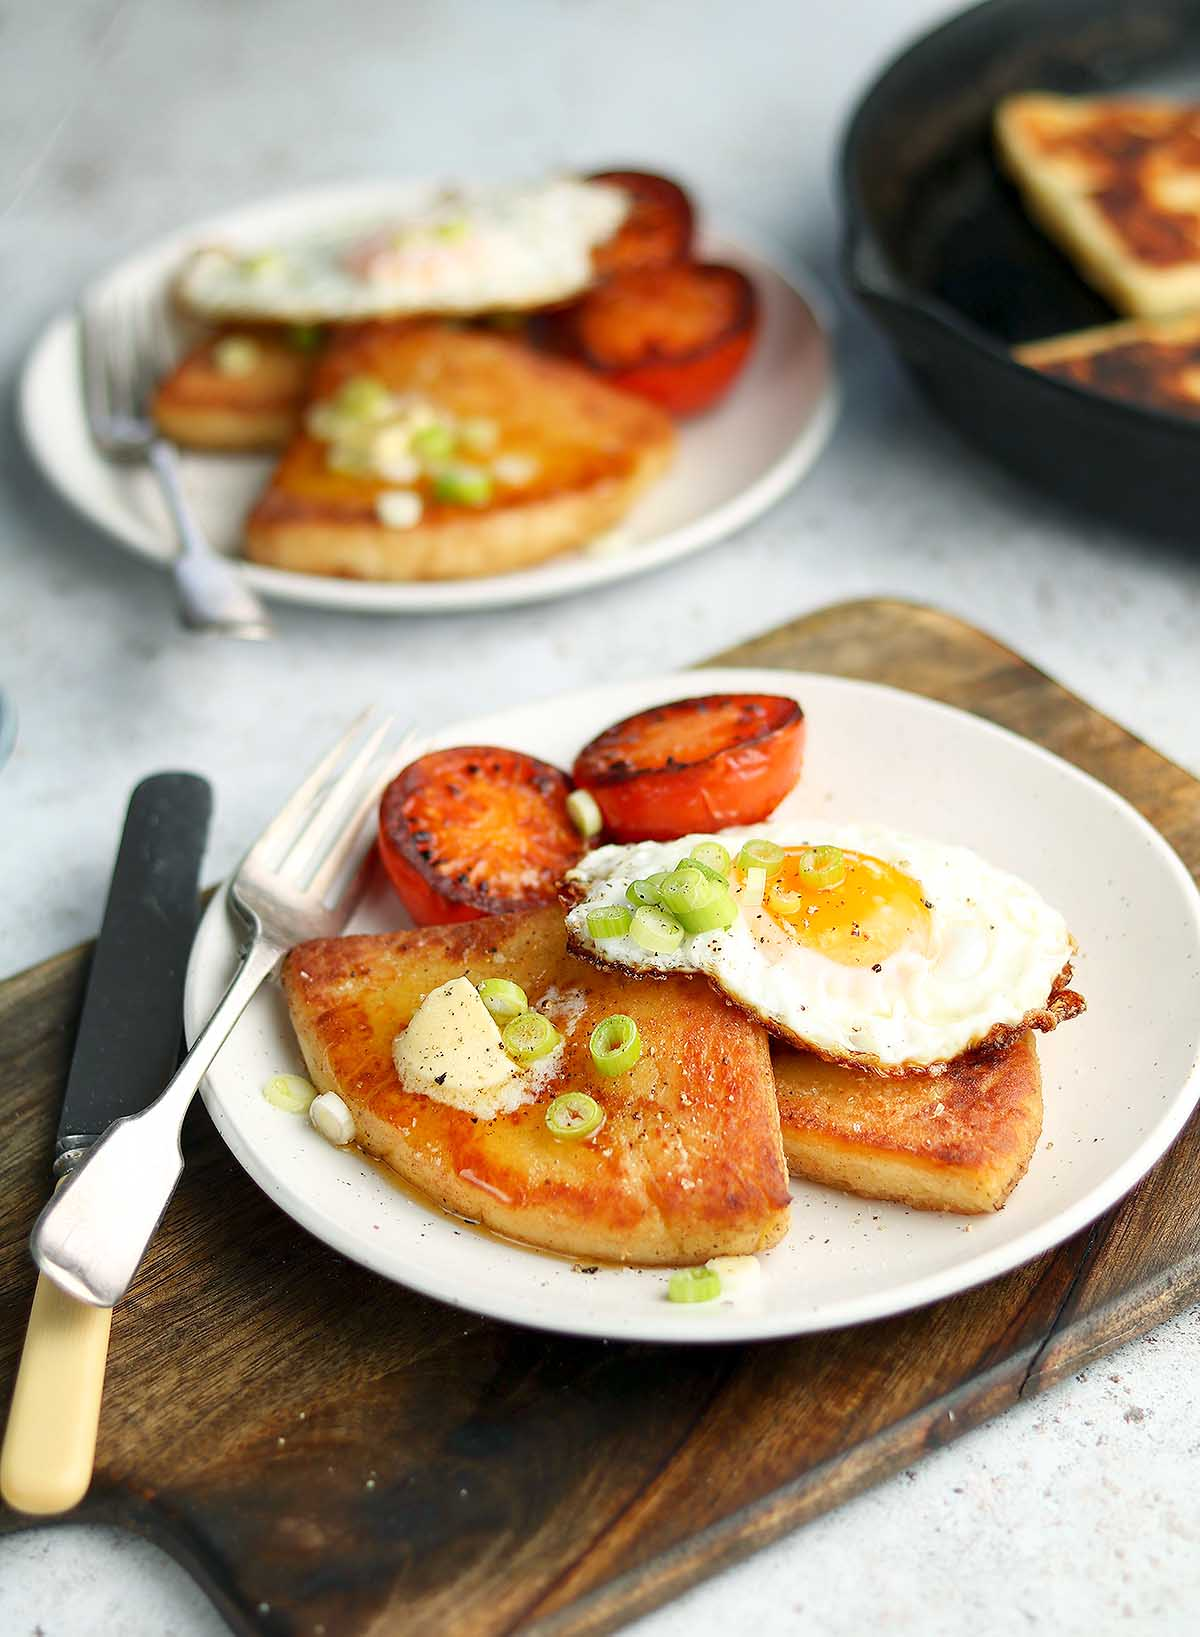 Fried Potato served with tomatoes and a fried egg with sprint onion garnish.